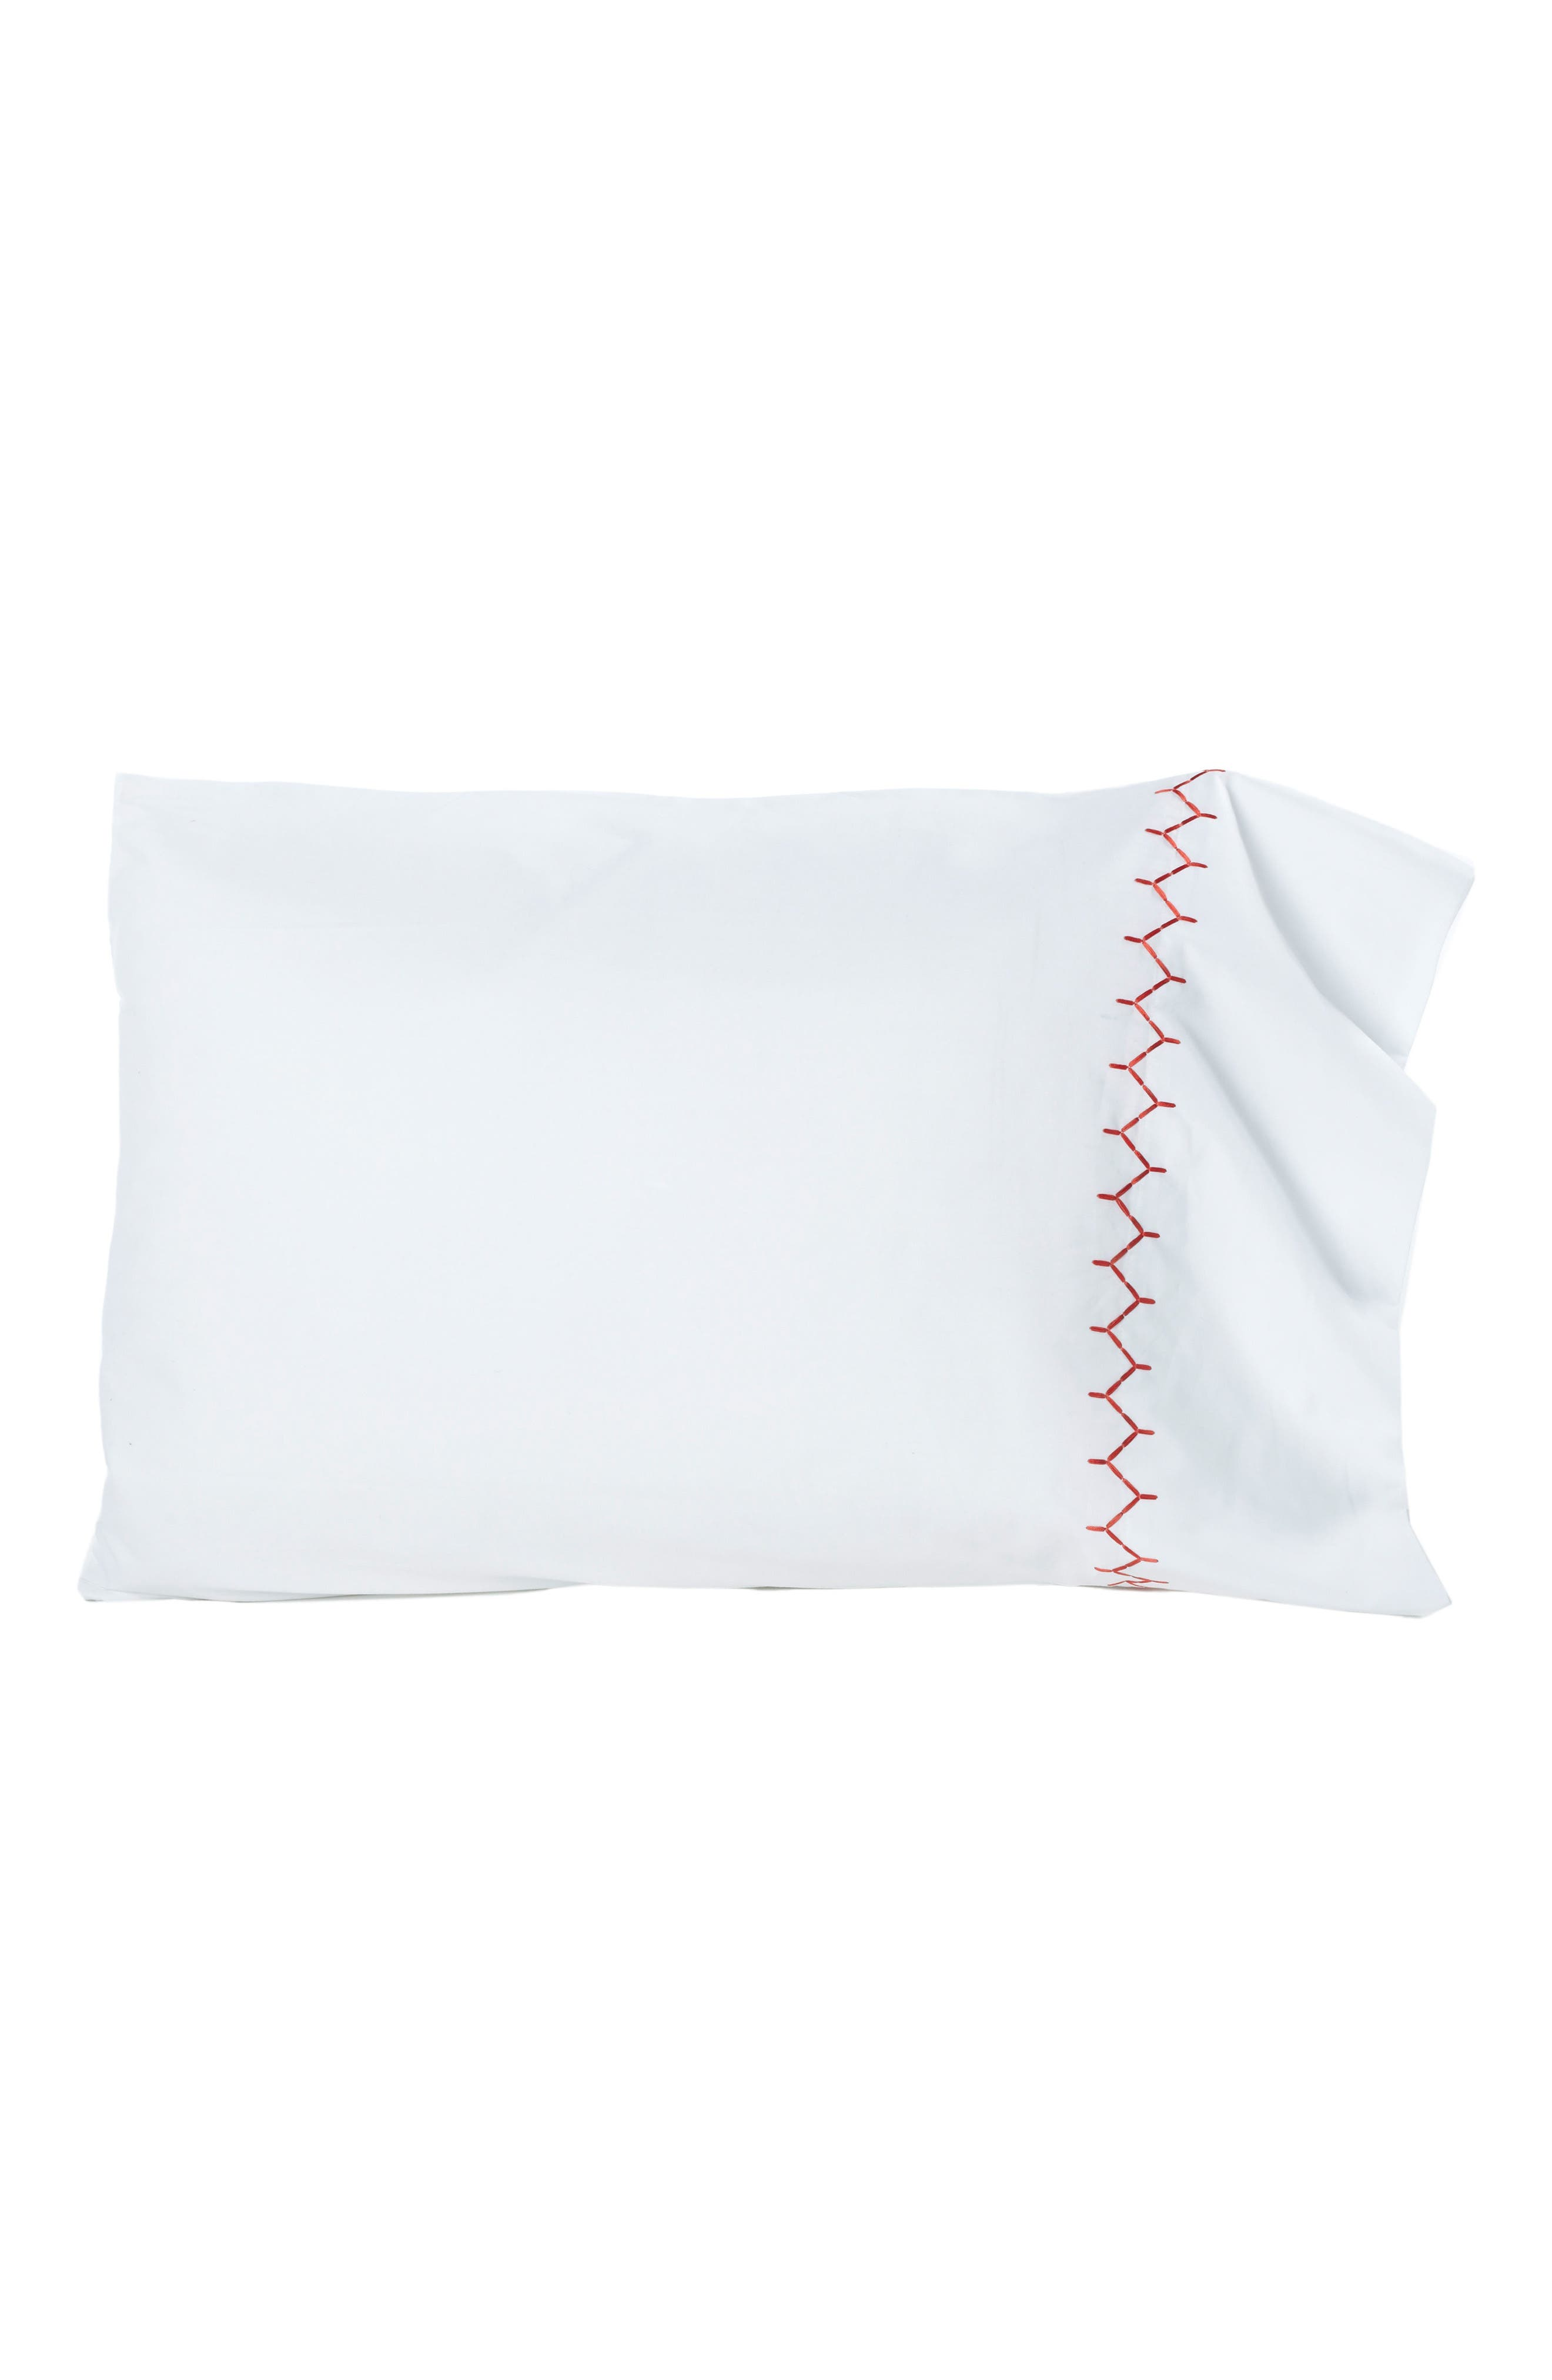 Alternate Image 1 Selected - John Robshaw Stitched Border 300 Thread Count Pillowcases